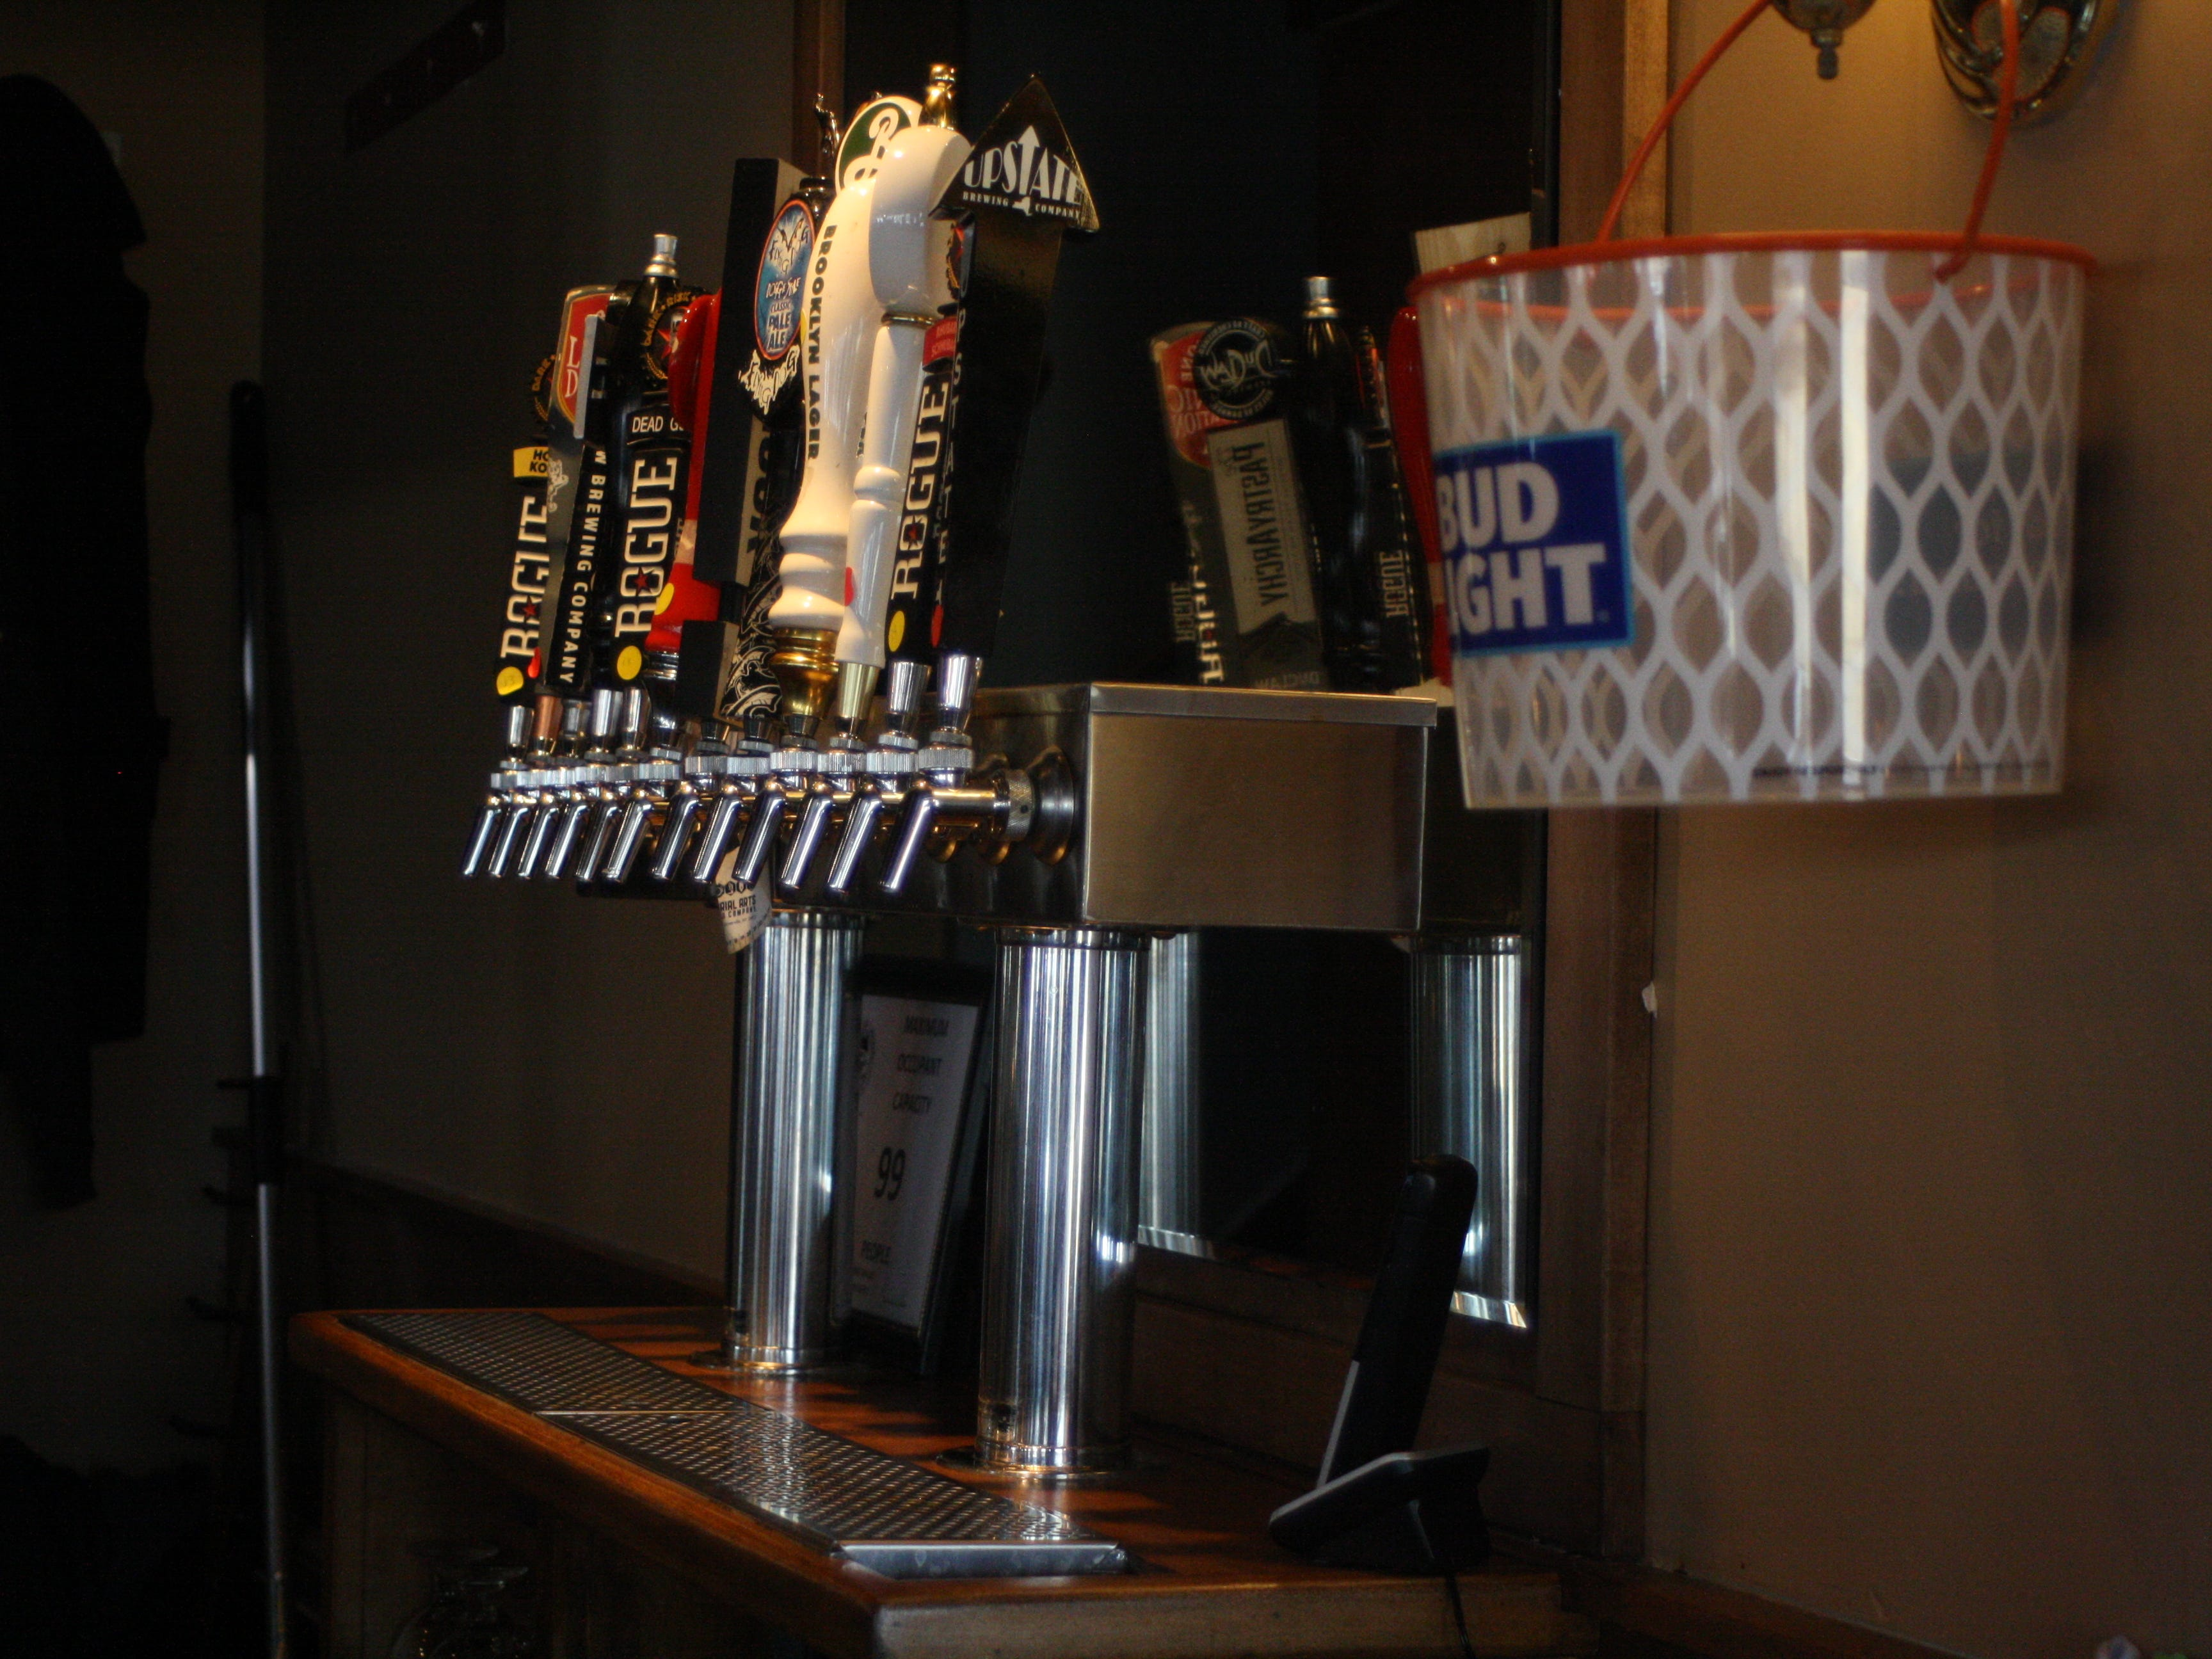 The Pour House Pub and Grill is located on 4402 Watson Blvd in Johnson City.